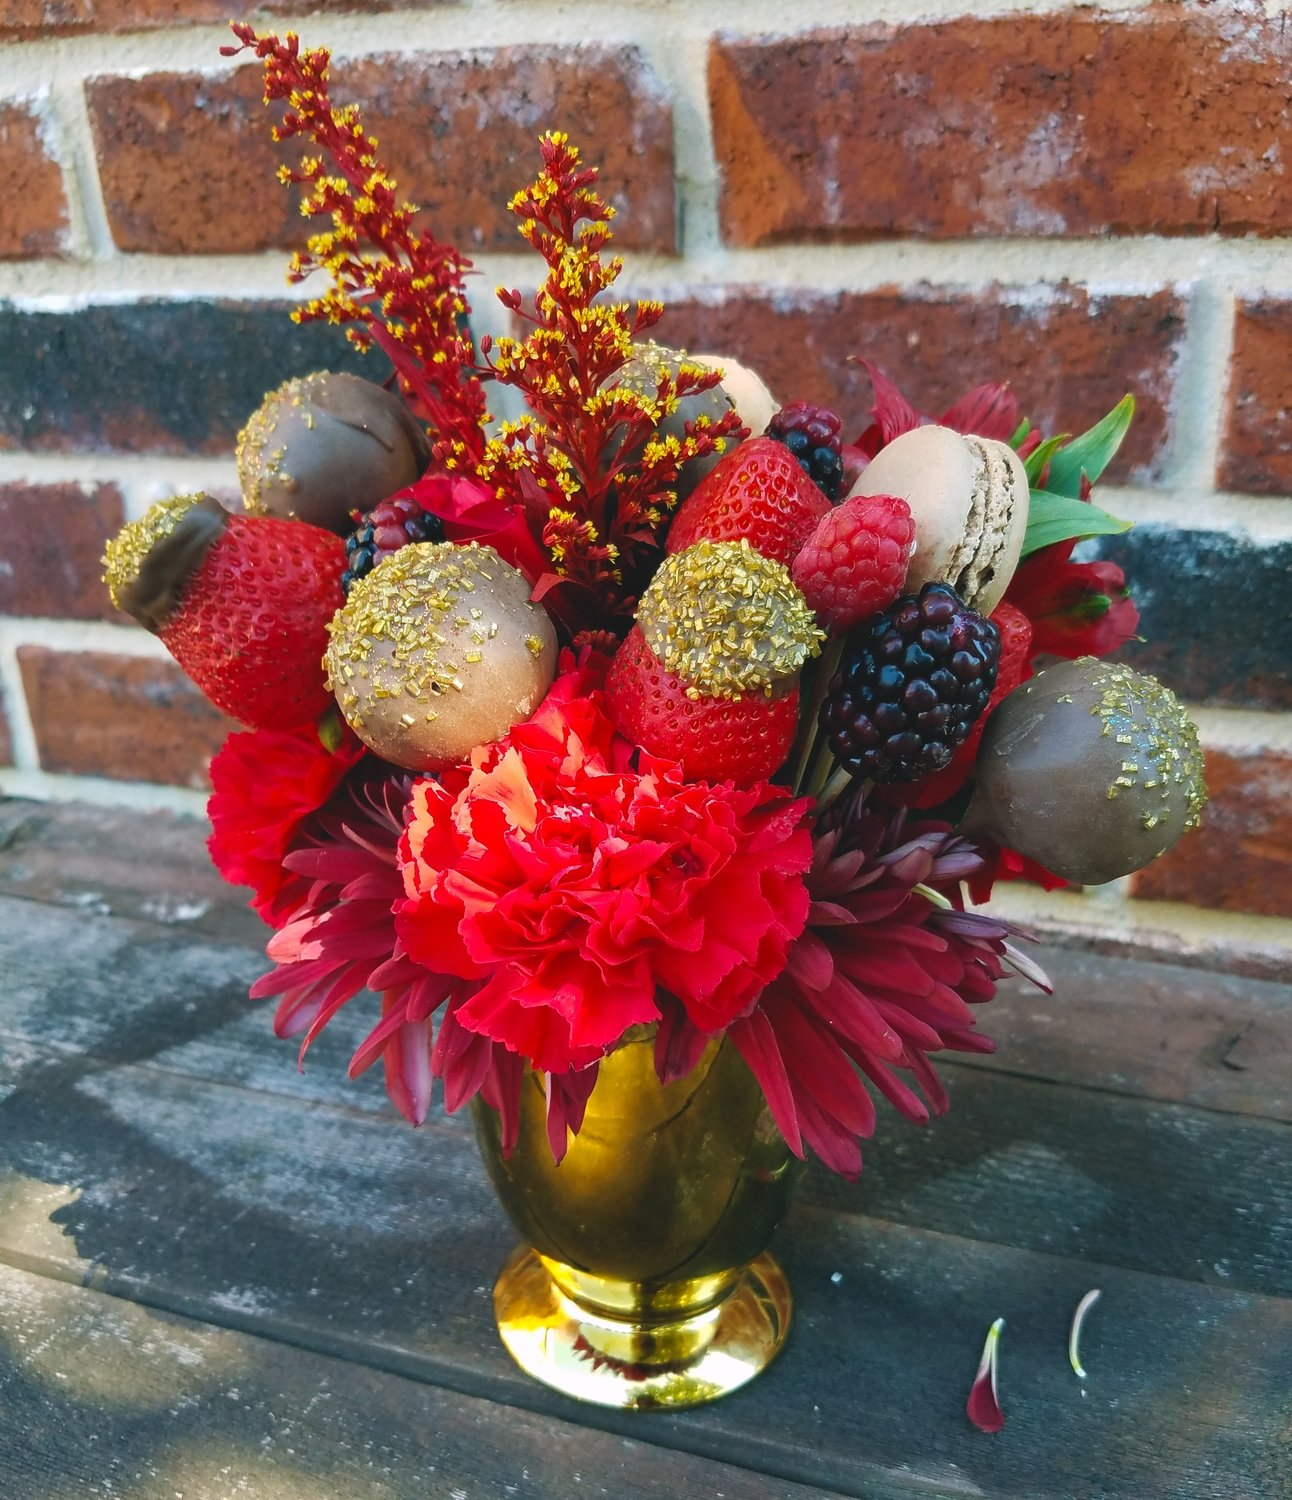 Truffle & Fruit Bouquet (Red/Brown w/ Gold Vase)